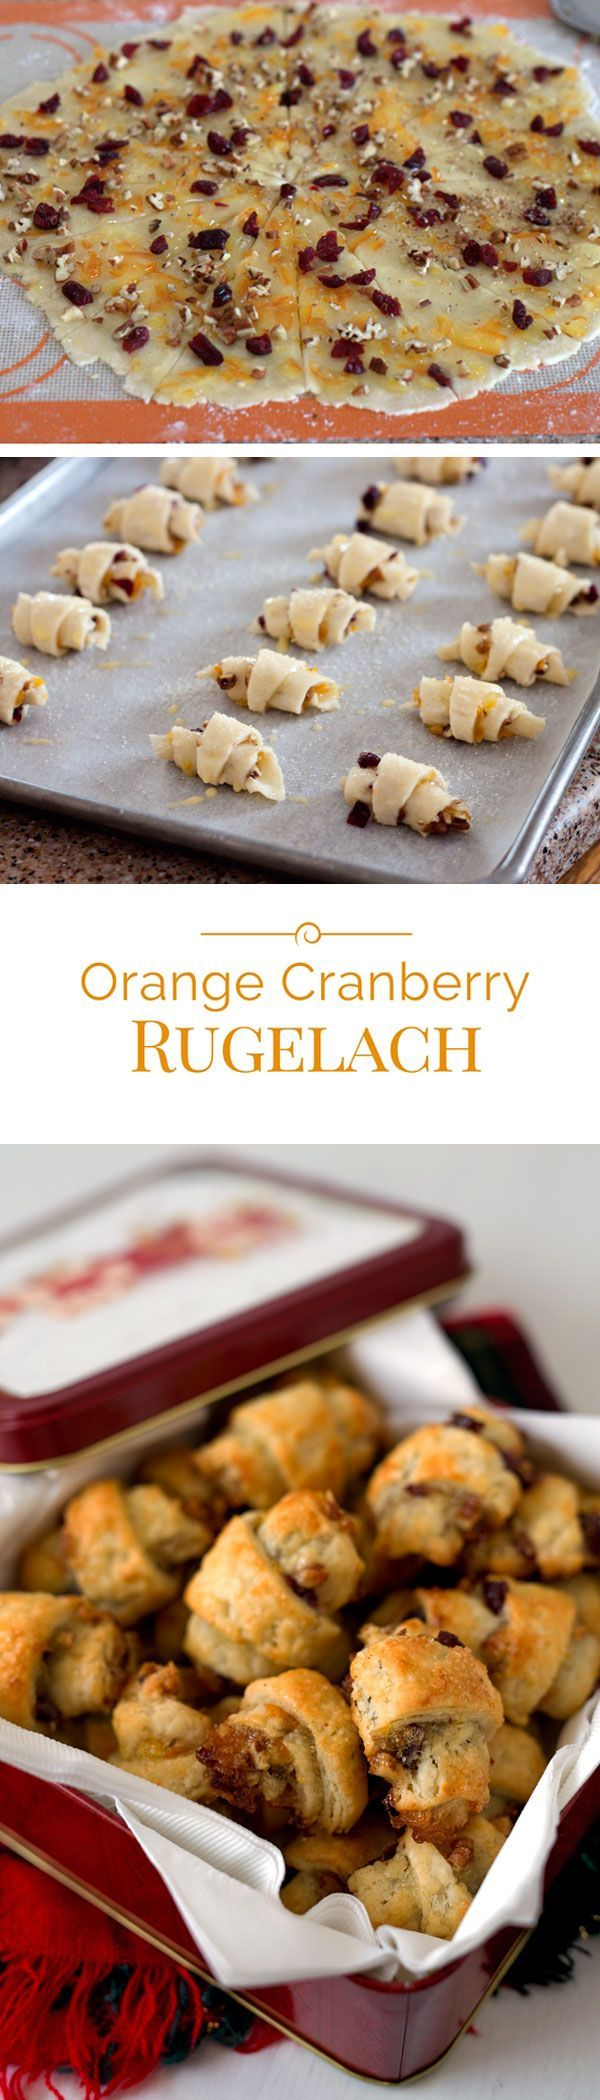 Orange Cranberry Rugelach | Recipe | Spreads, Pastries and ...